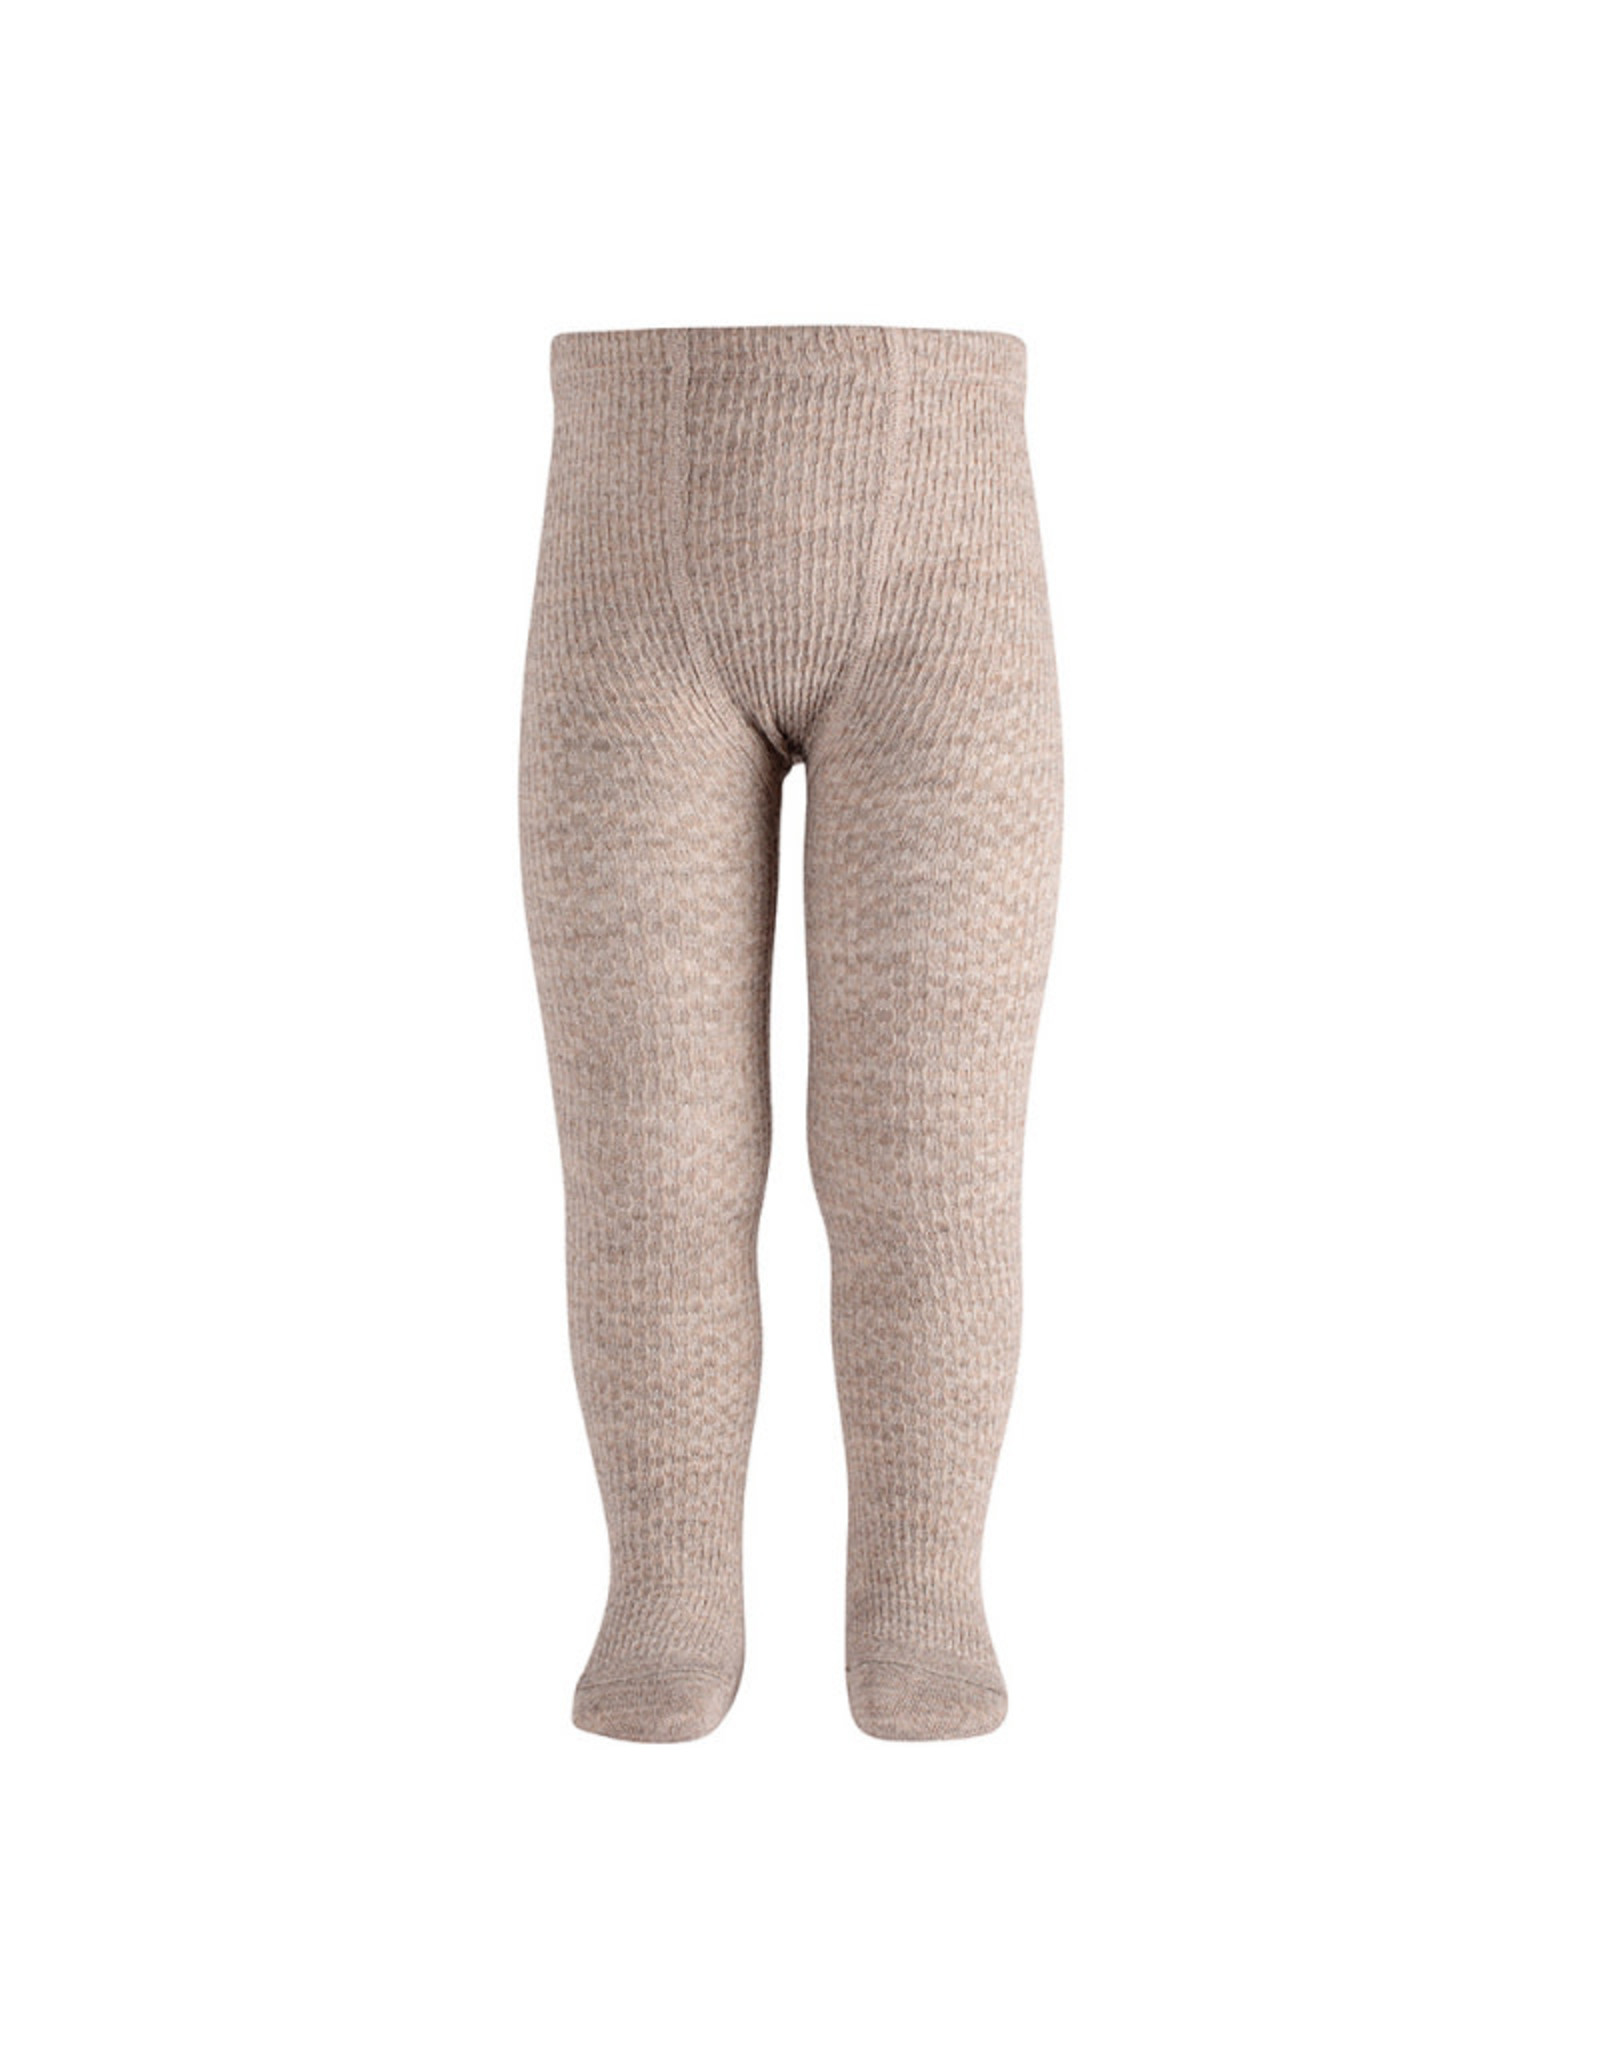 CONDOR Oatmeal Wool Patterned Tights